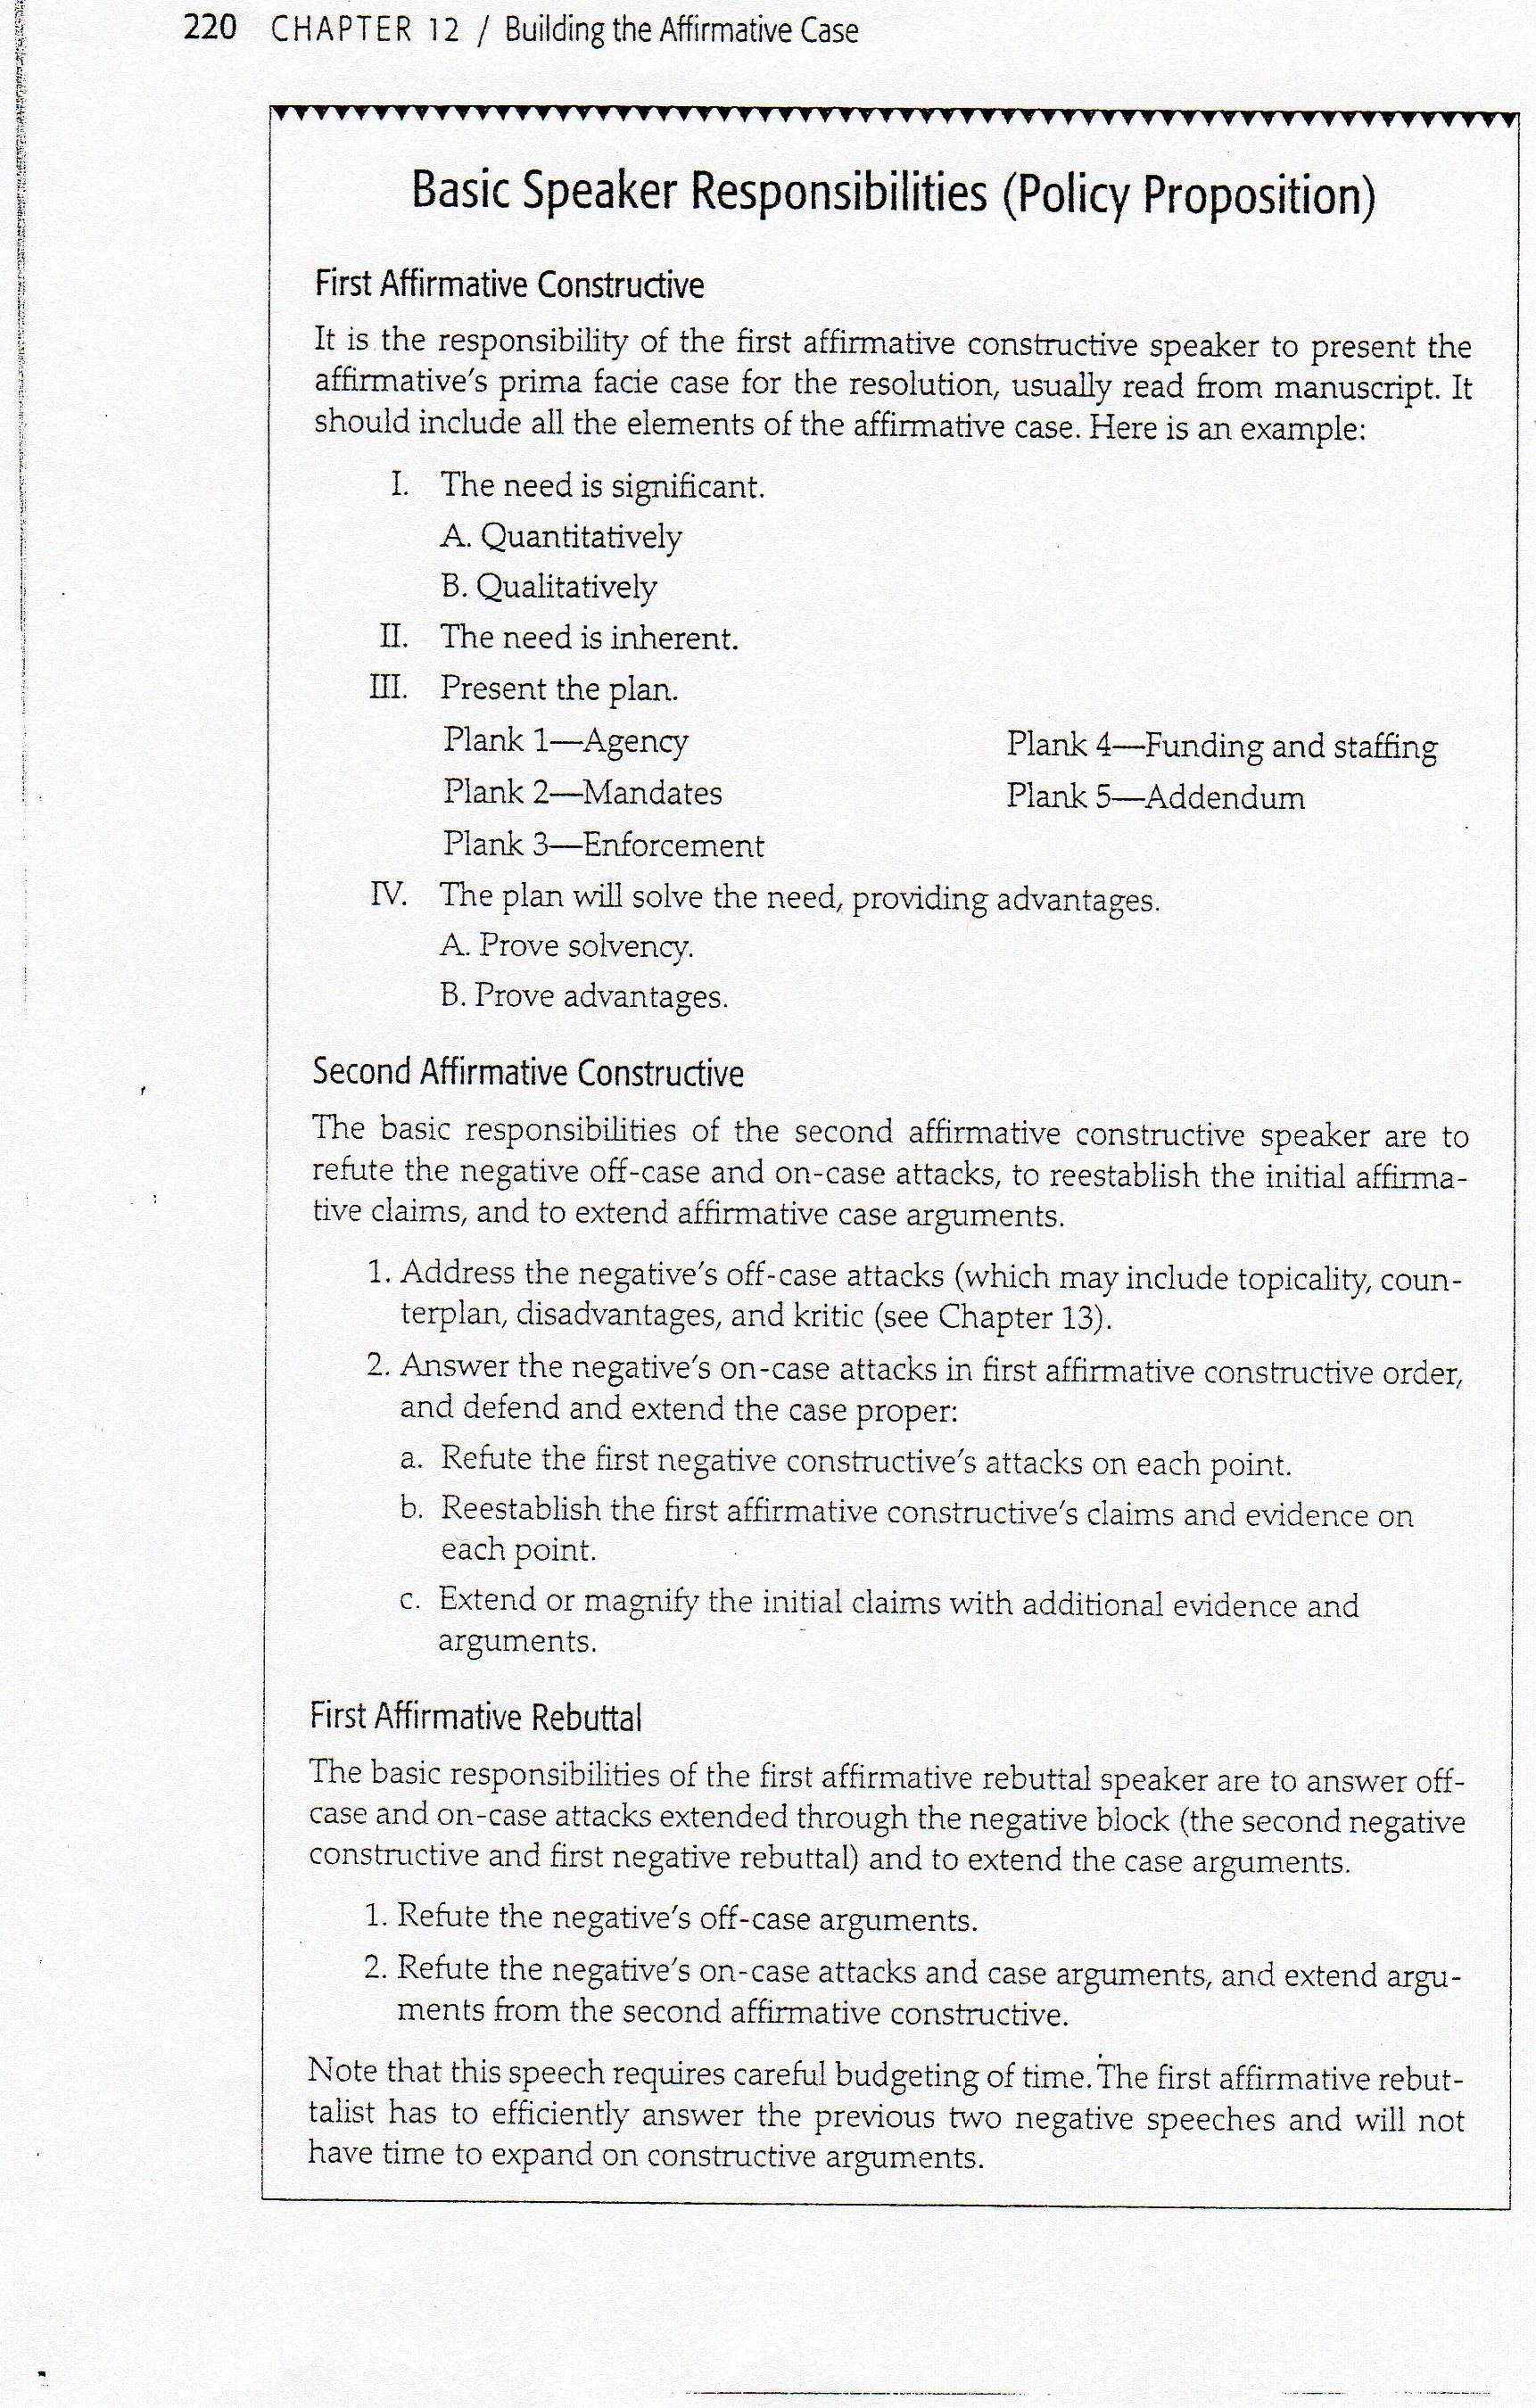 comm argumentation and advocacy people san jose state   government speakers responsibilities sample jpg